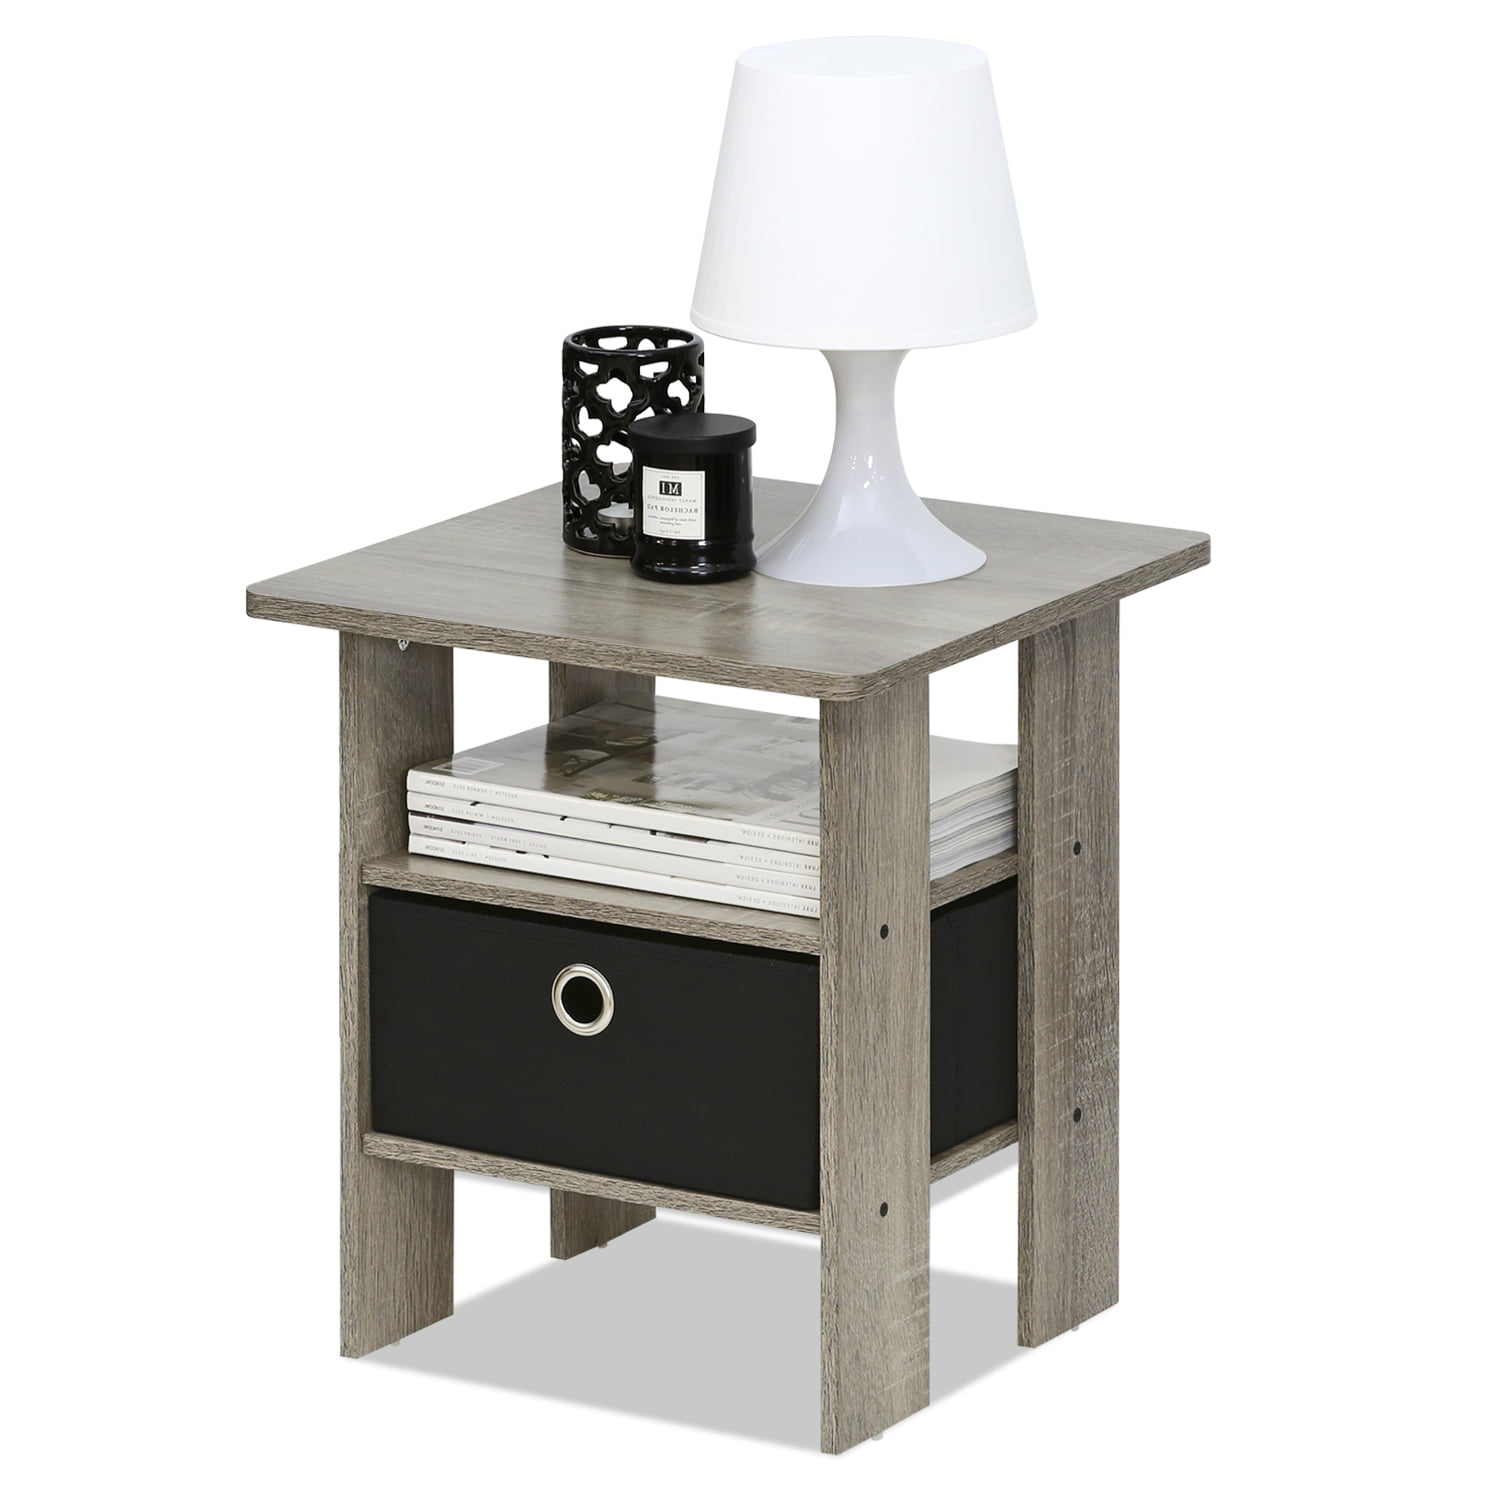 Petite End Table Bedroom Nightstand with Foldable Bin Drawer, Multiple Colors by Furinno